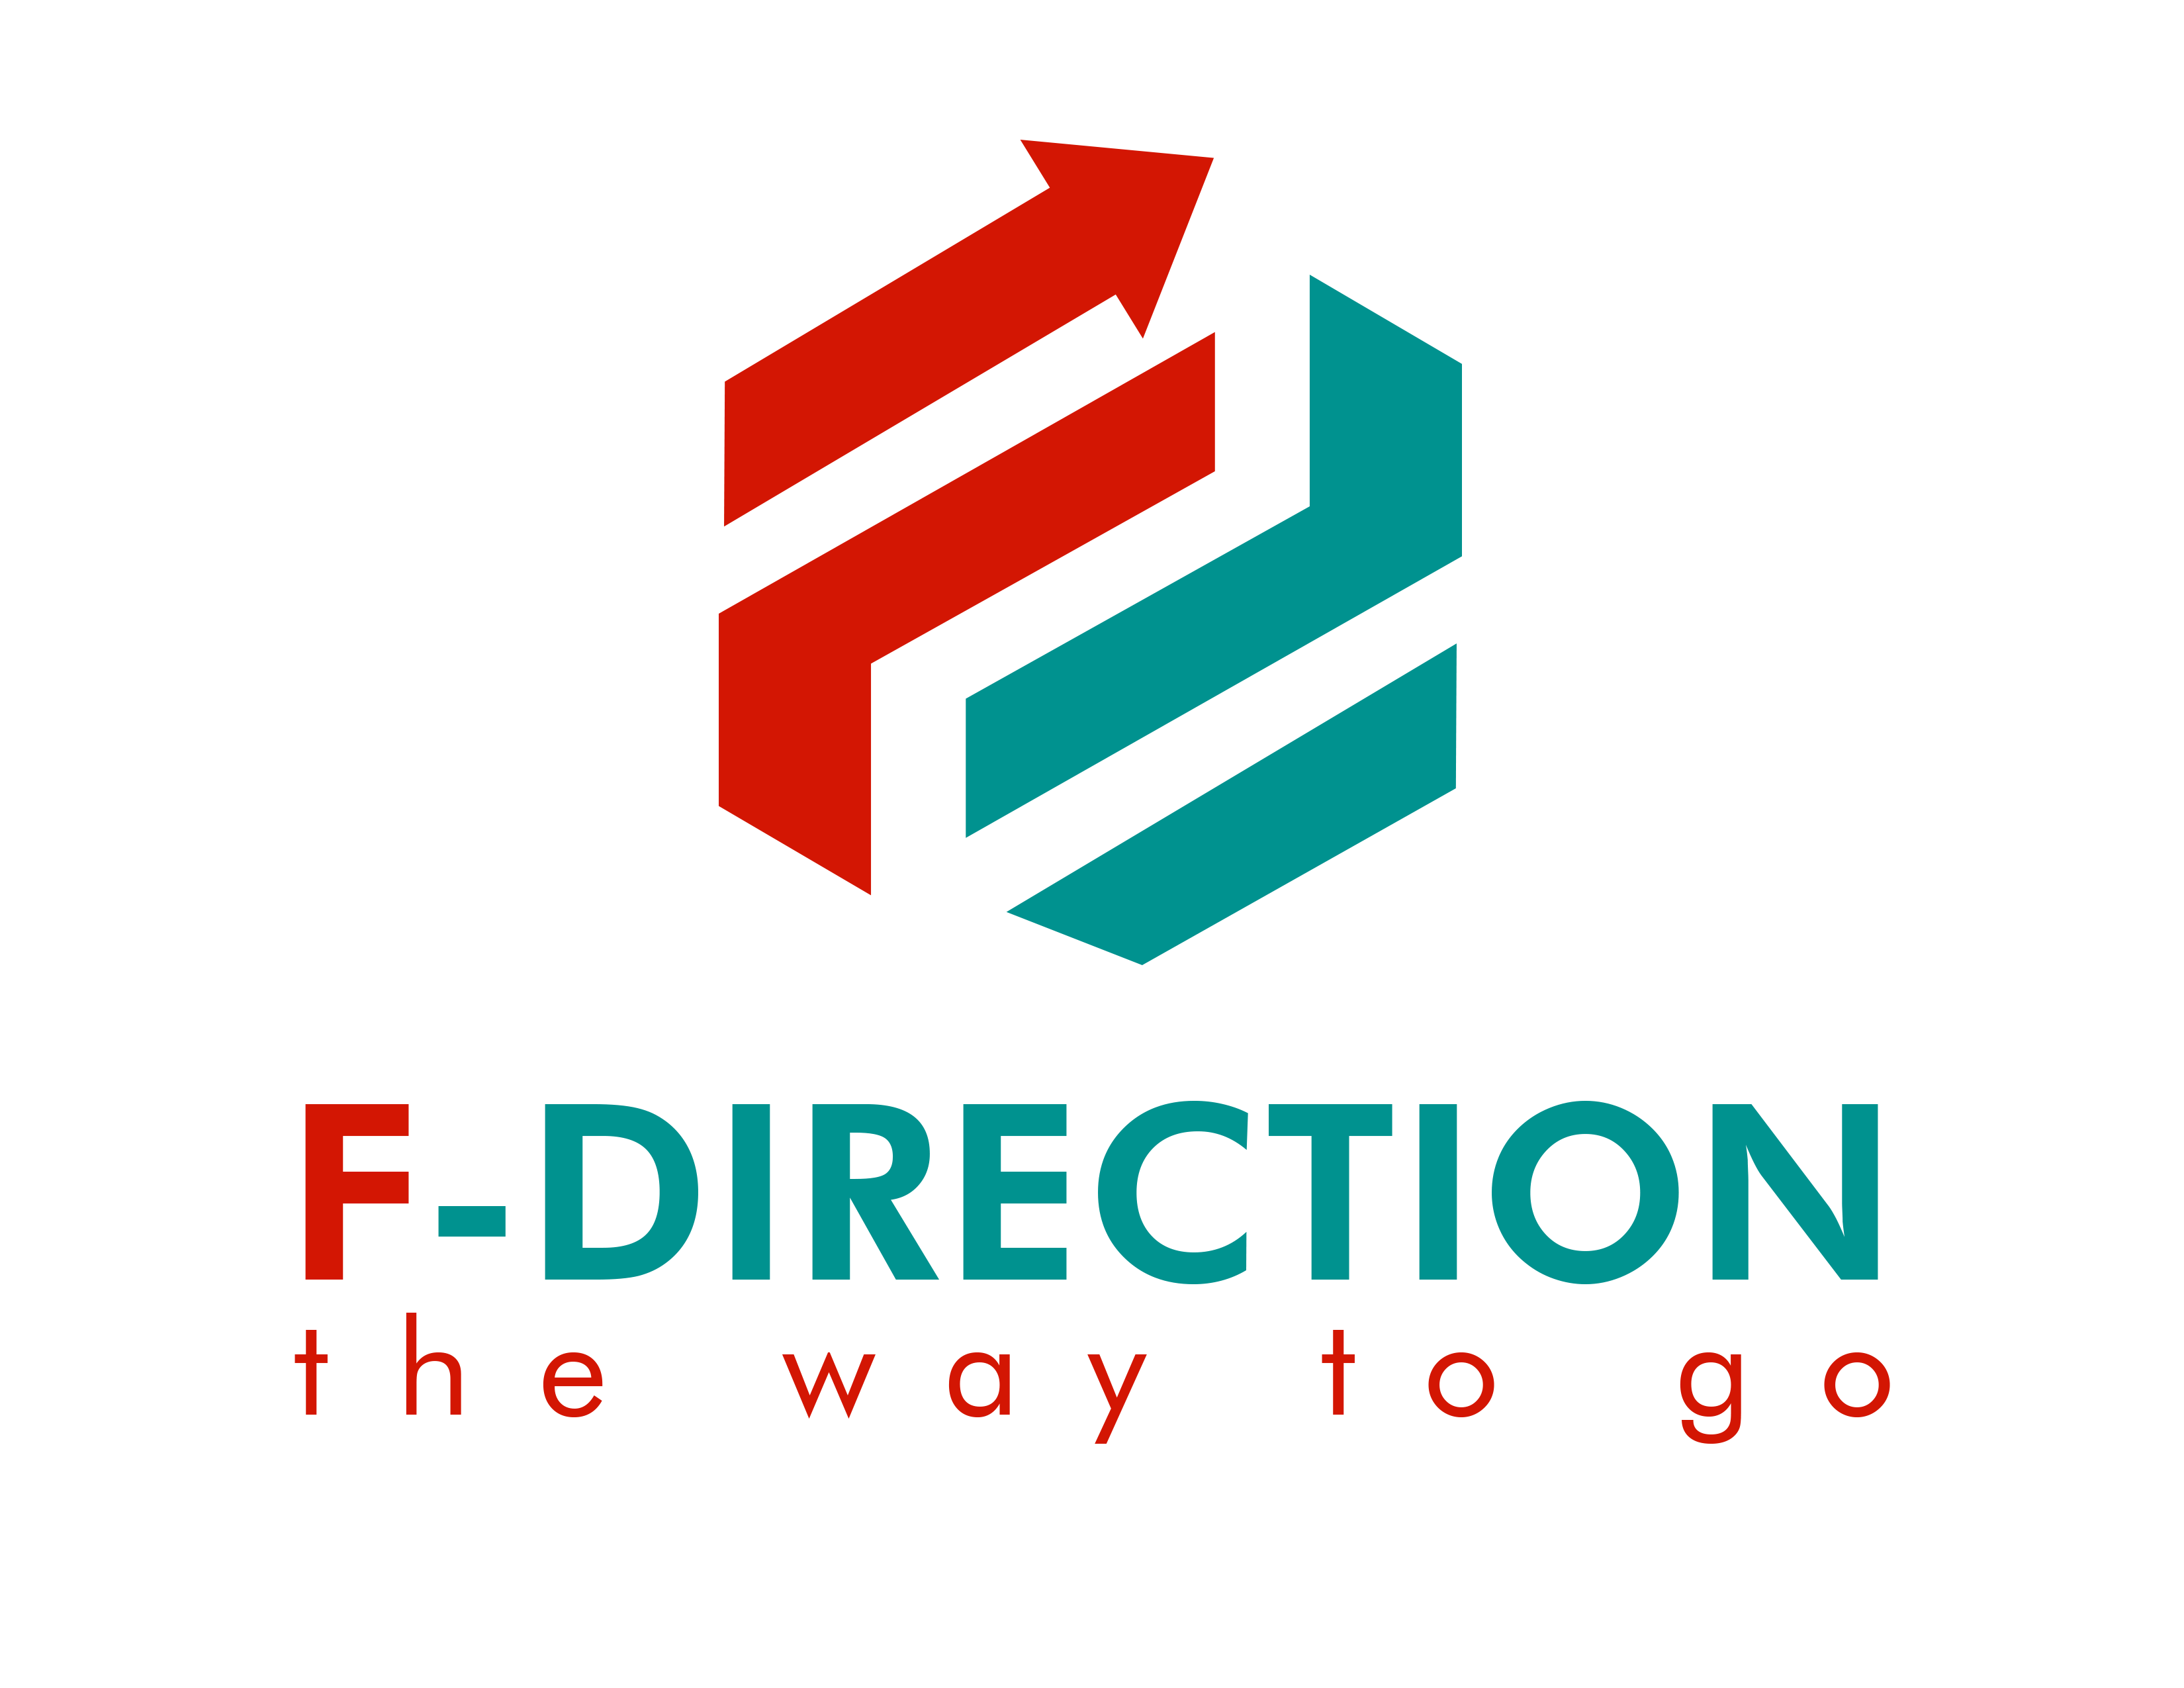 F-Direction 02 copy